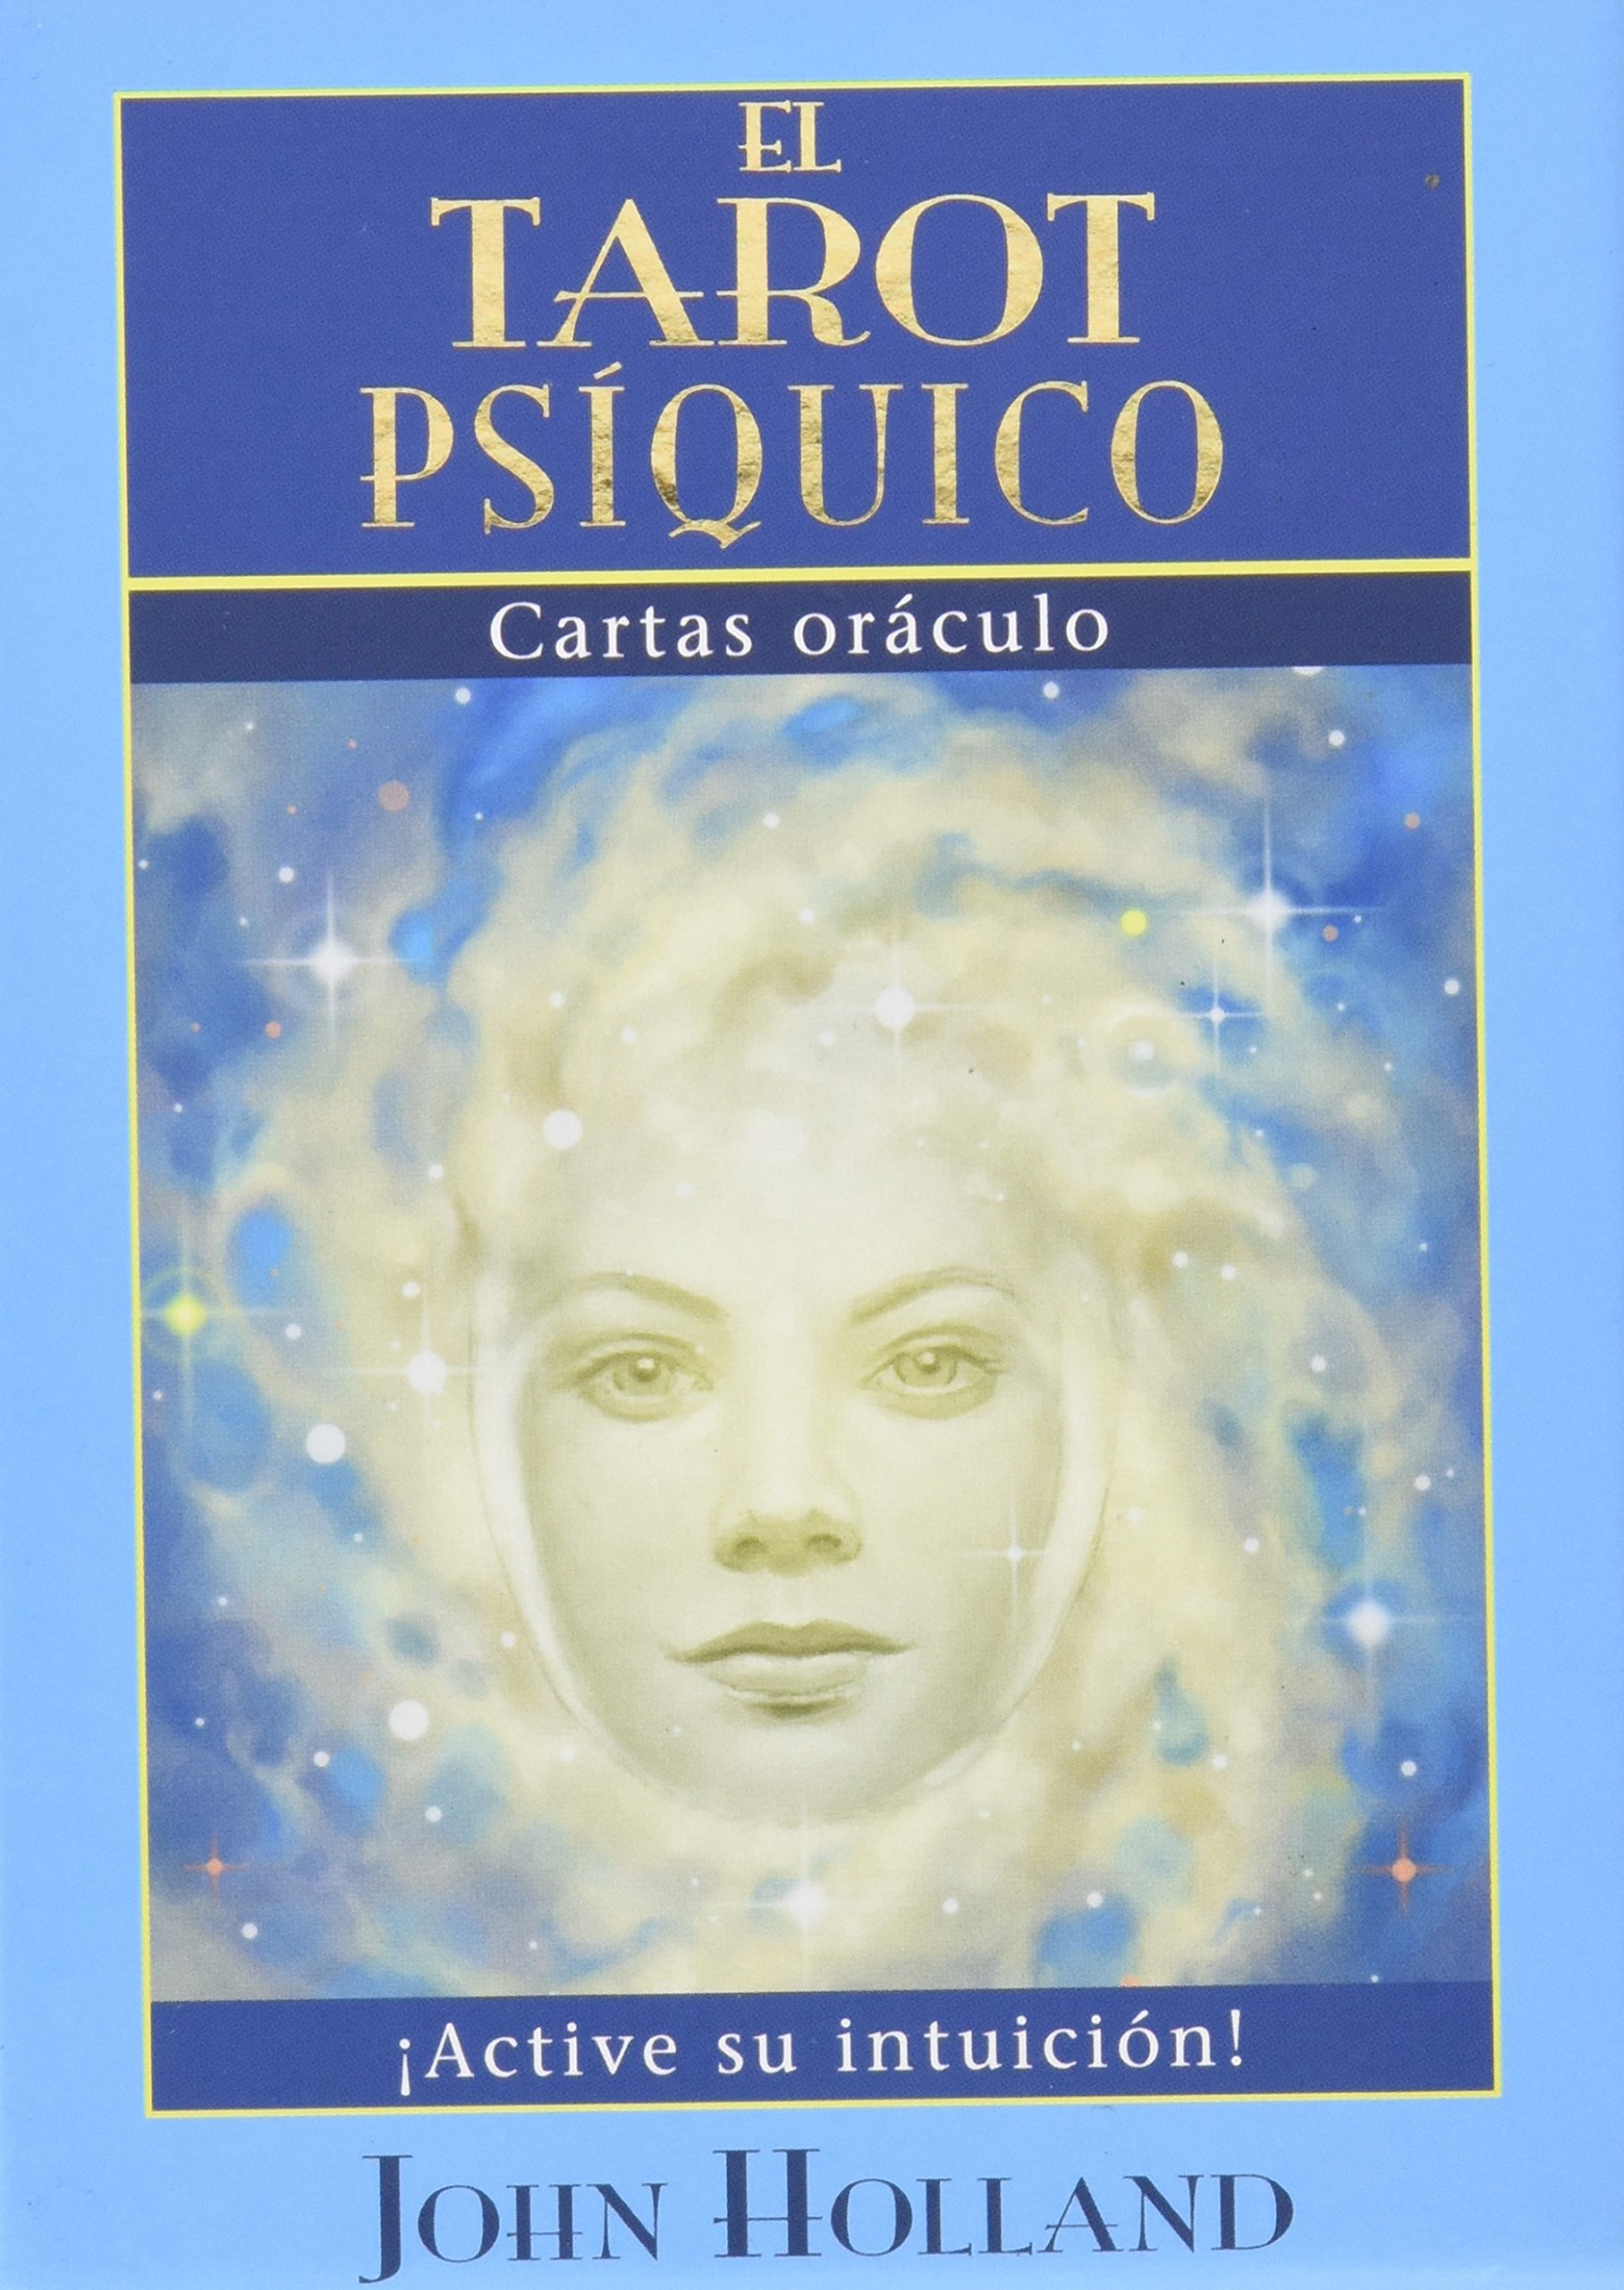 El Tarot psíquico: Amazon.es: John Holland: Libros